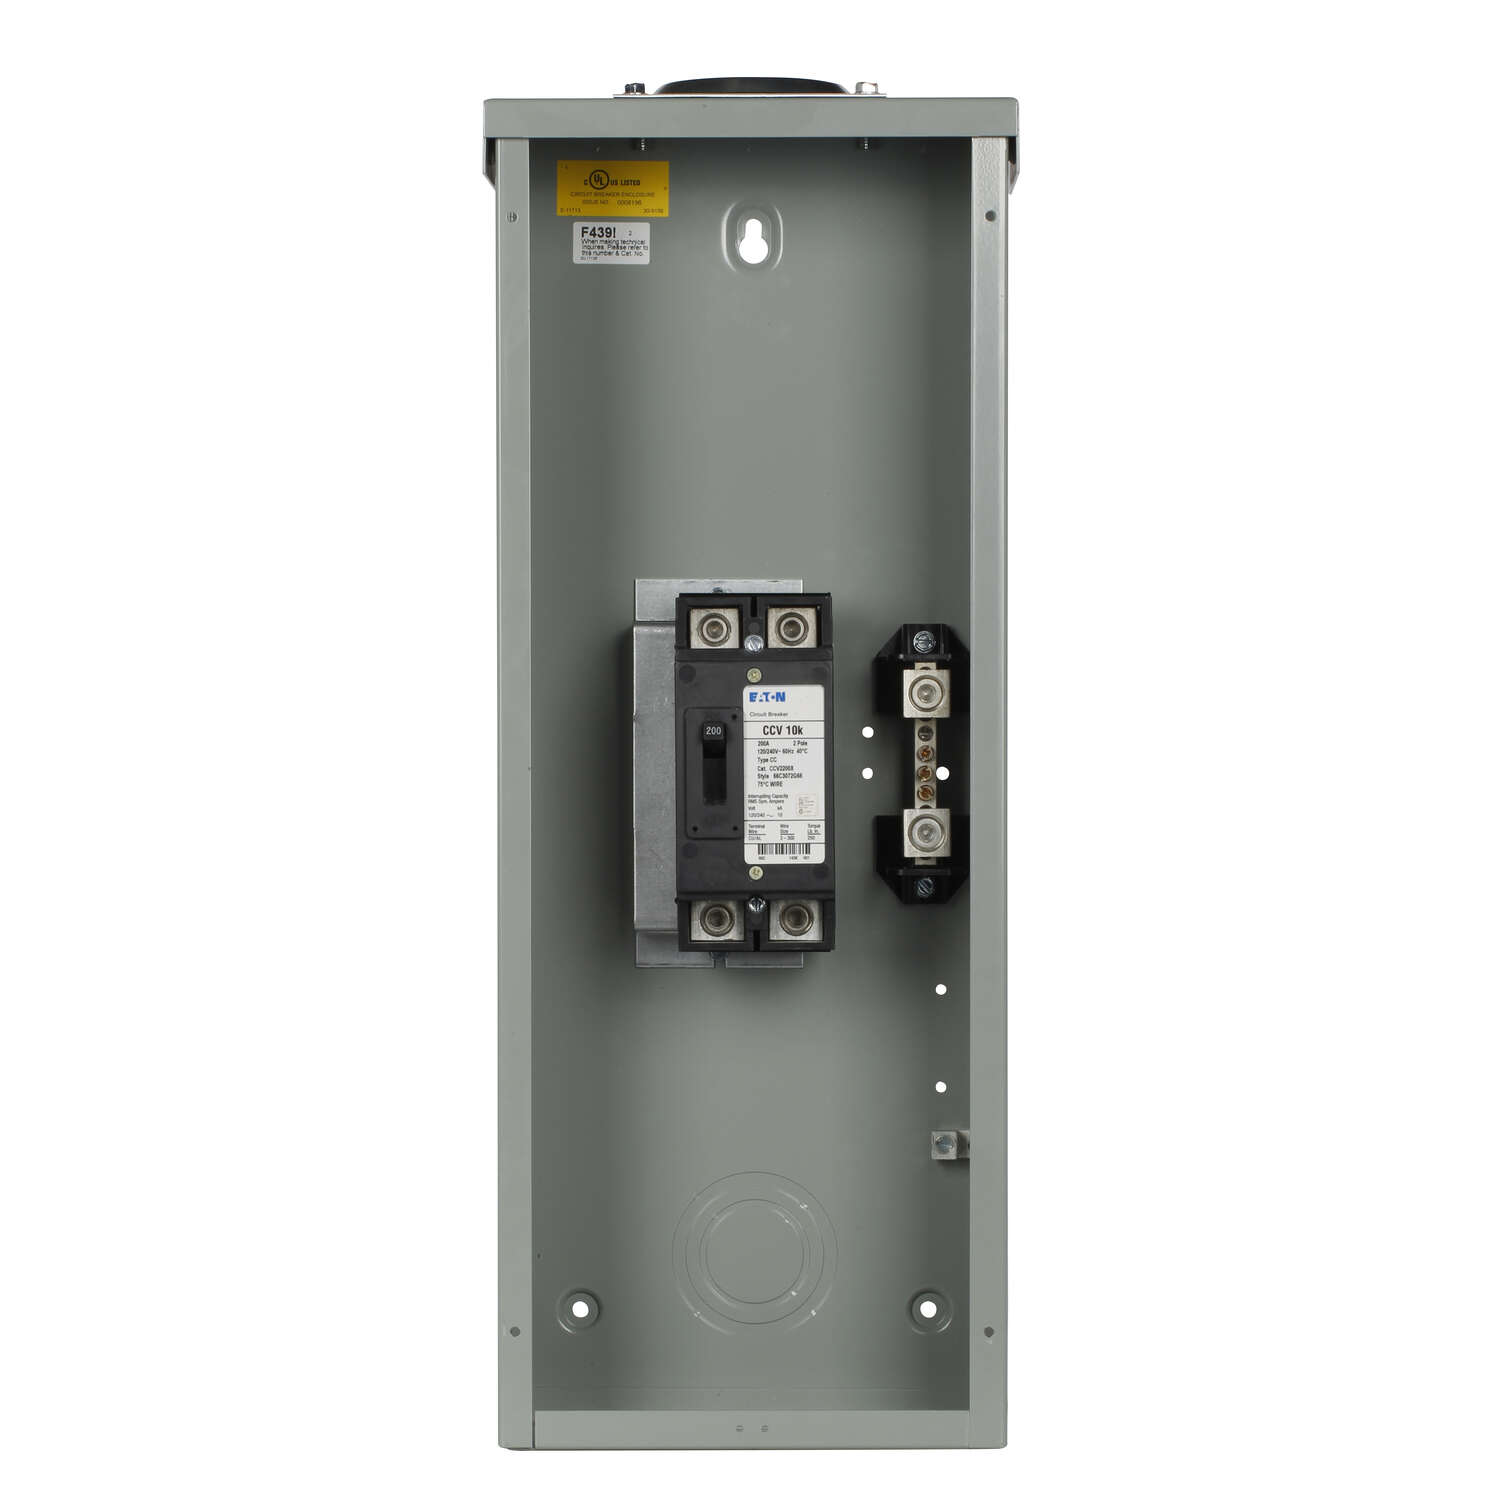 Eaton  Cutler-Hammer  200 amps Plug In  2-Pole  Mobile Home Breaker Panel